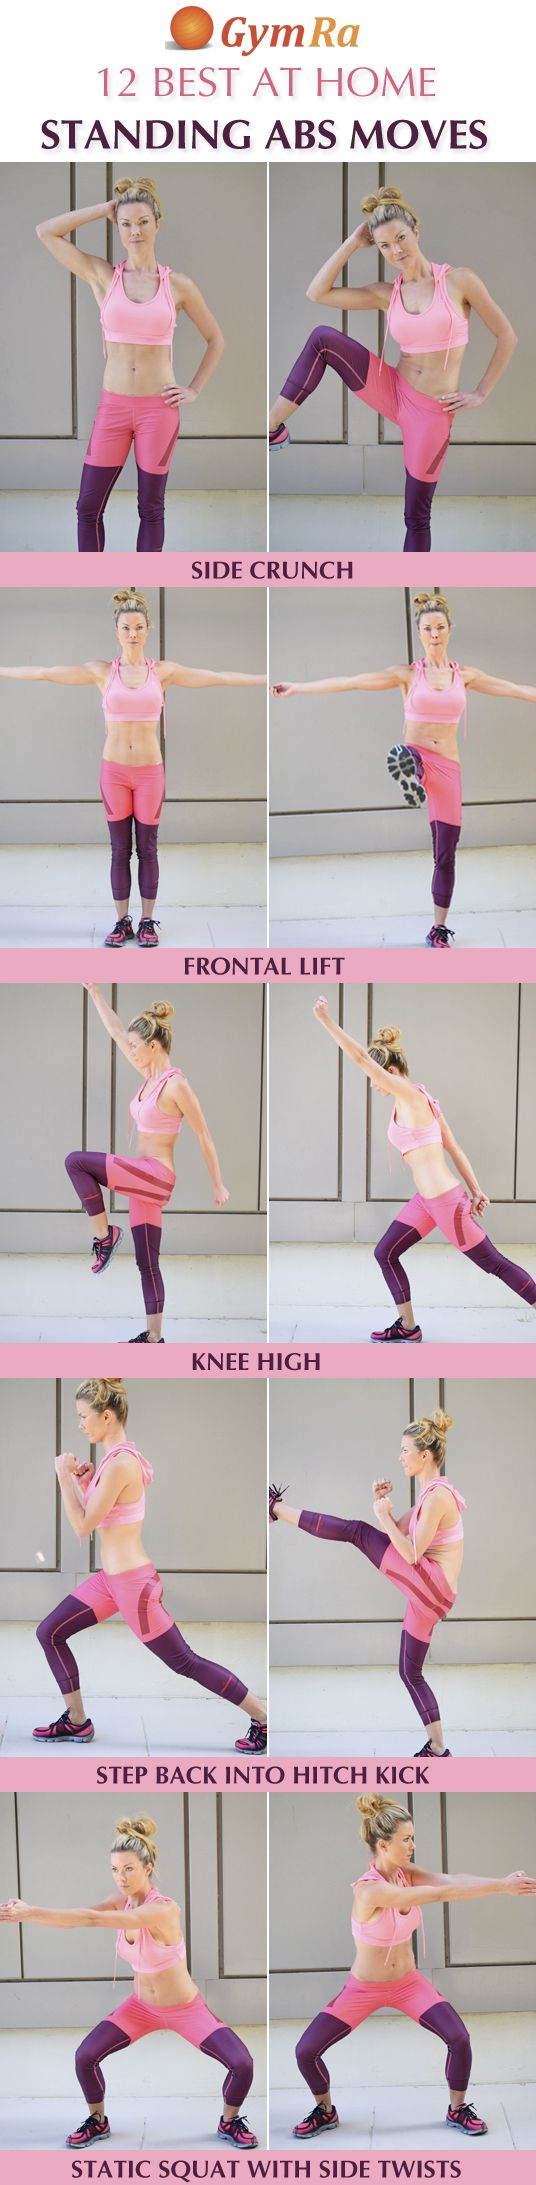 12 Best At Home Standing Abs Exercises  Click the above image to see all the. 12 Best At Home Standing Abs Exercises  Click the above image to